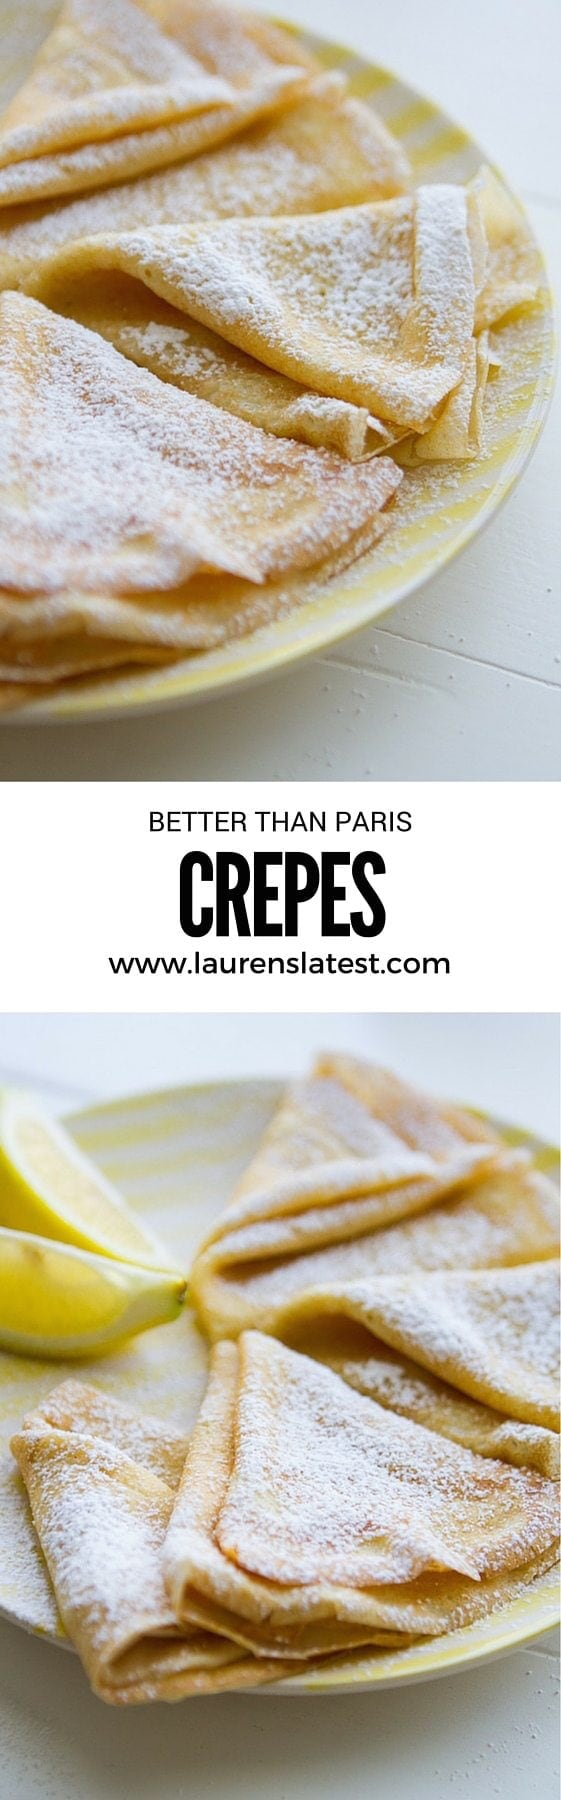 Crepes alert! When you can't go to Paris, bring Paris to you with this easy crepes recipe. Get the ingredients and learn how to make crepes with my super simple techniques!